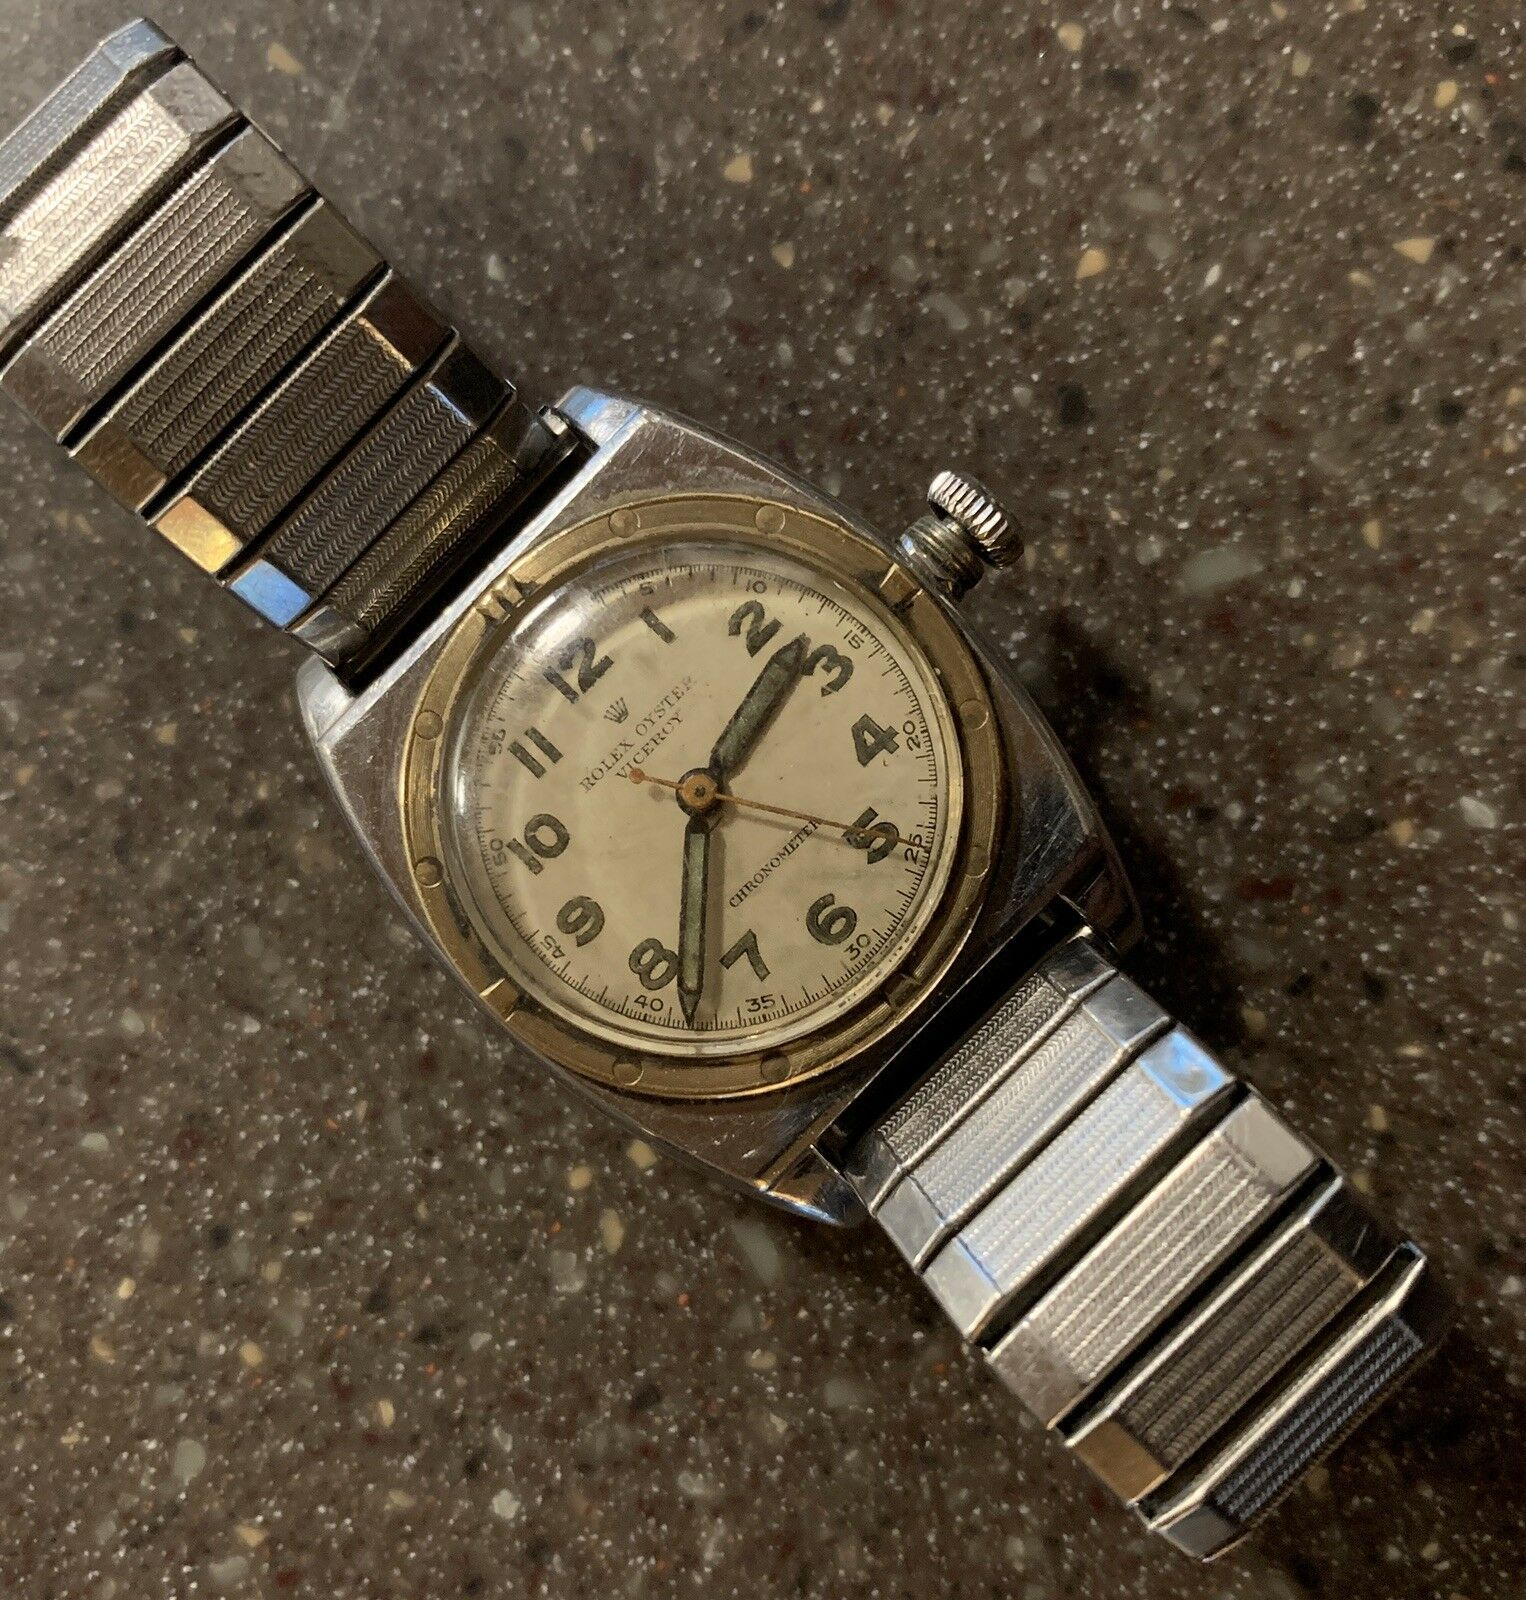 Details about Rolex Oyster Chronometer Viceroy Watch 3359